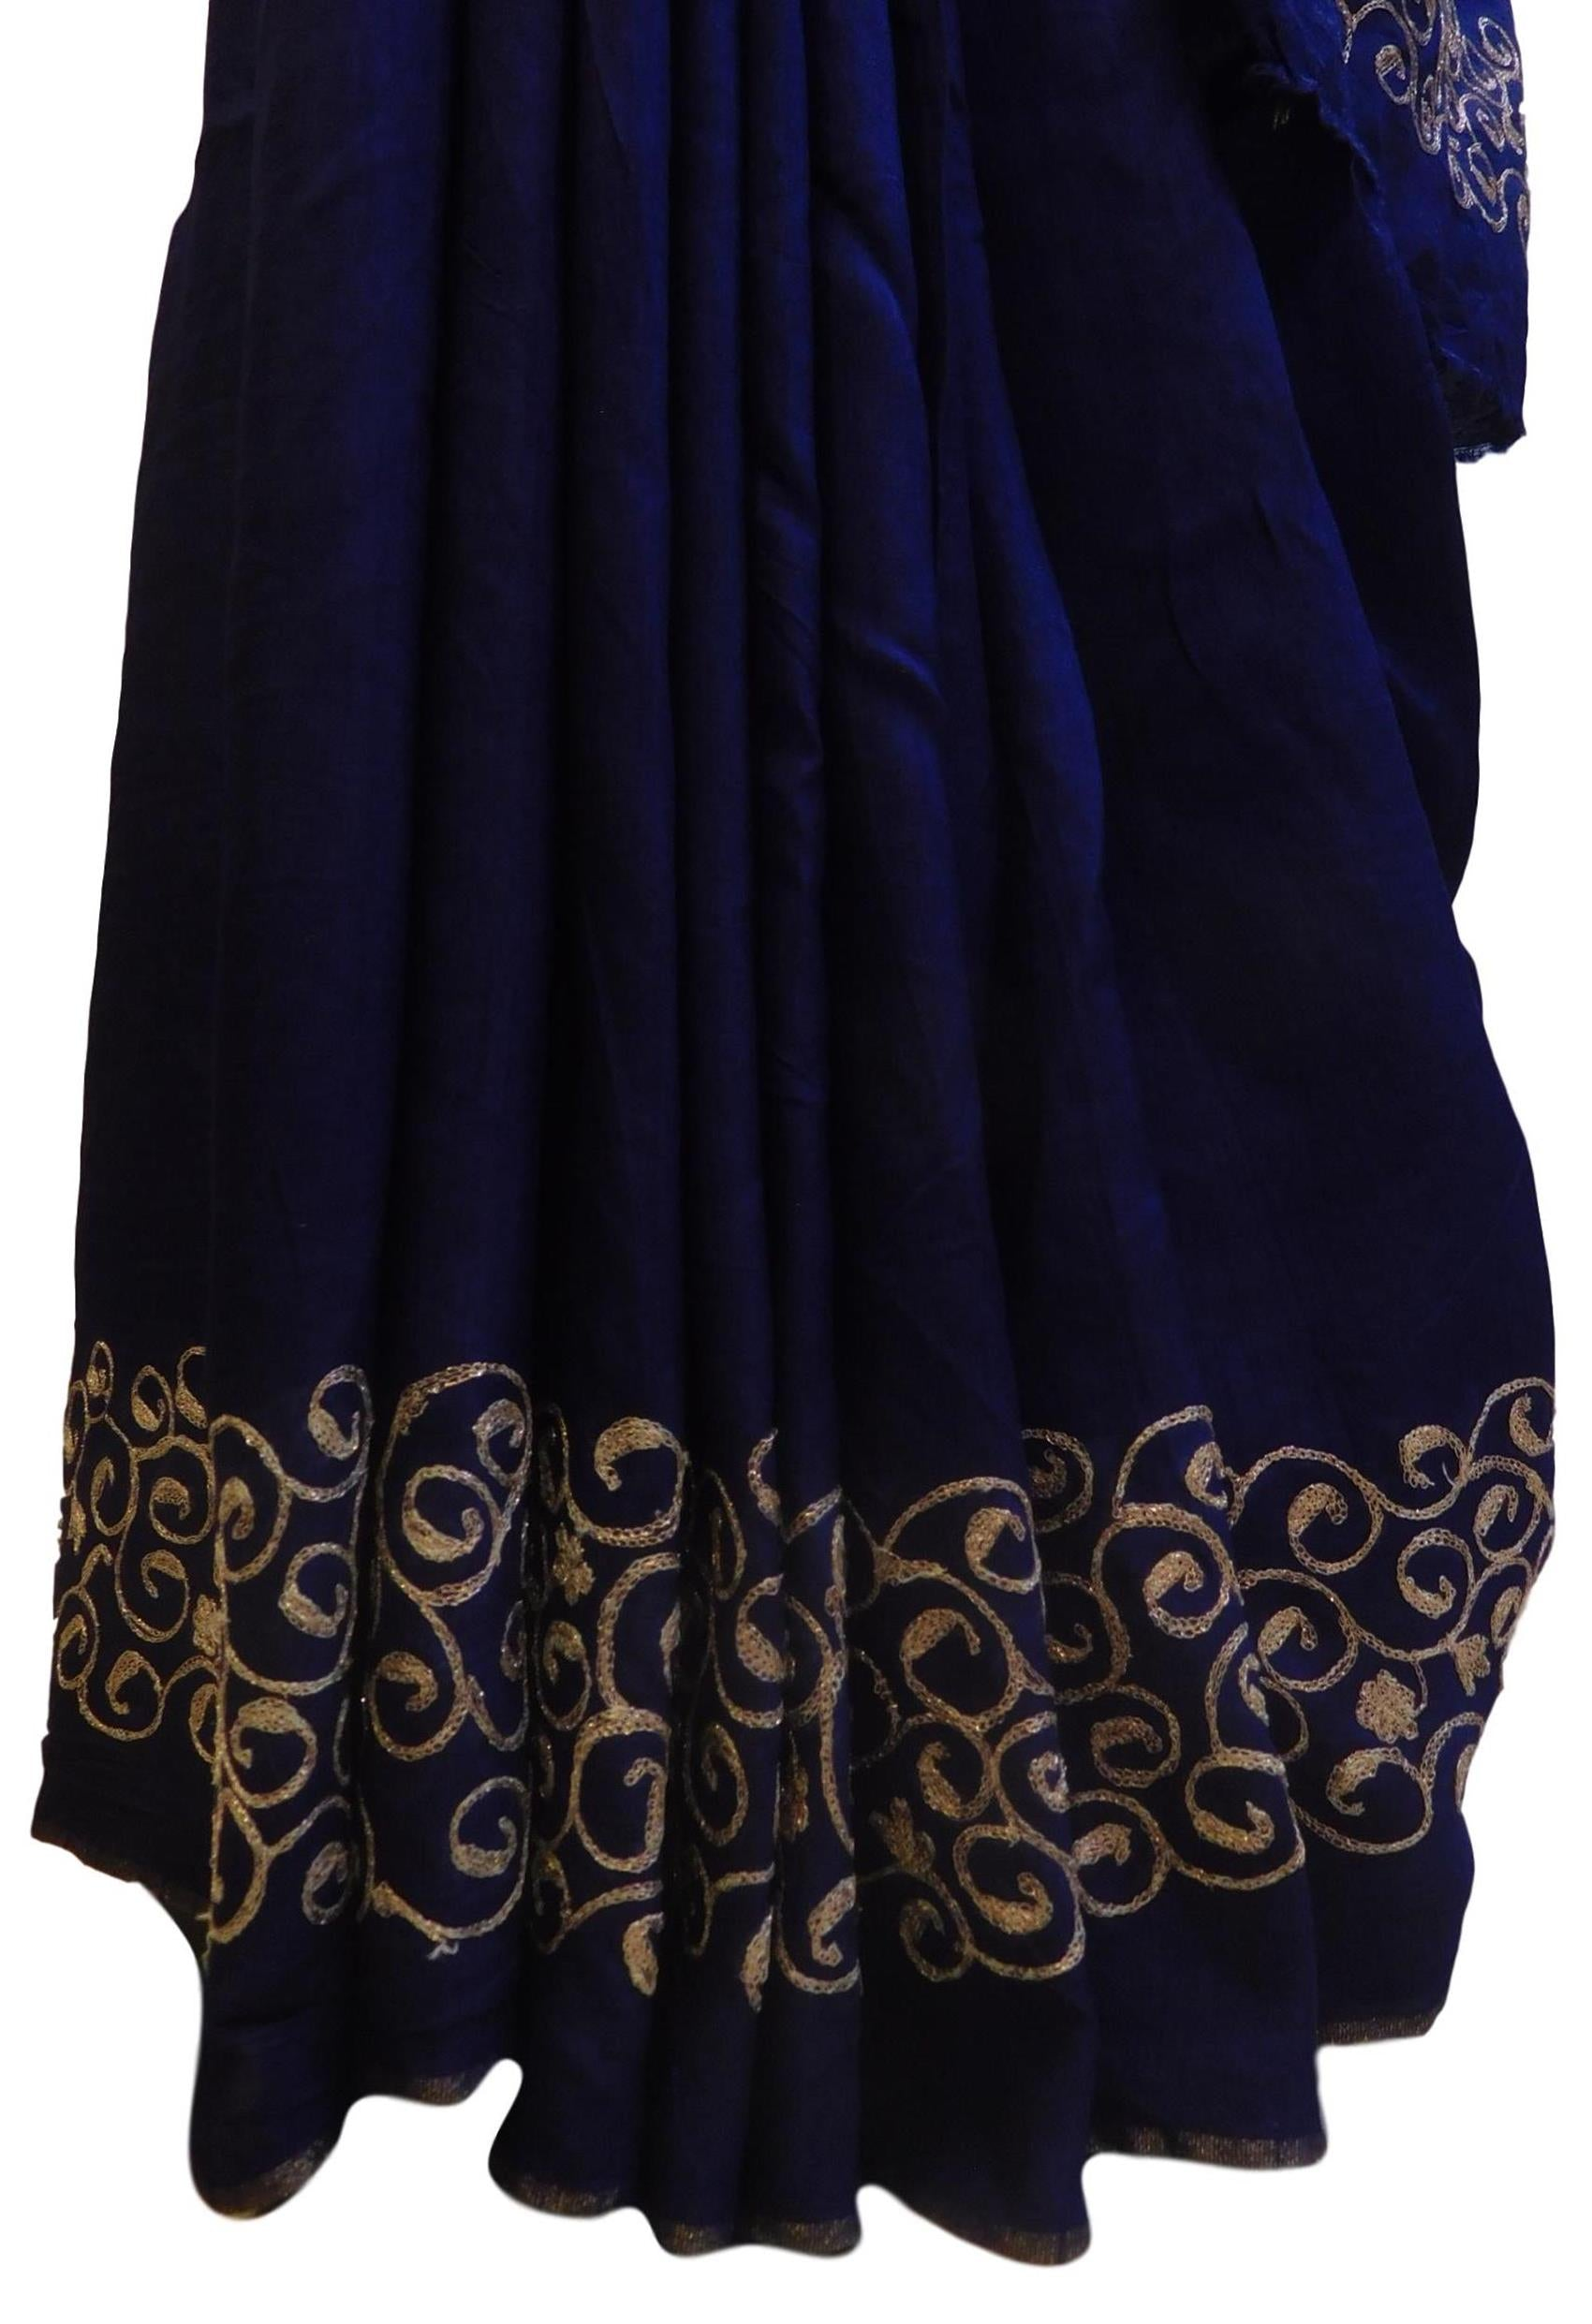 Blue Designer Wedding Partywear Pure Raw Silk Hand Embroidery Zari Aari Work Kolkata Saree Sari E271